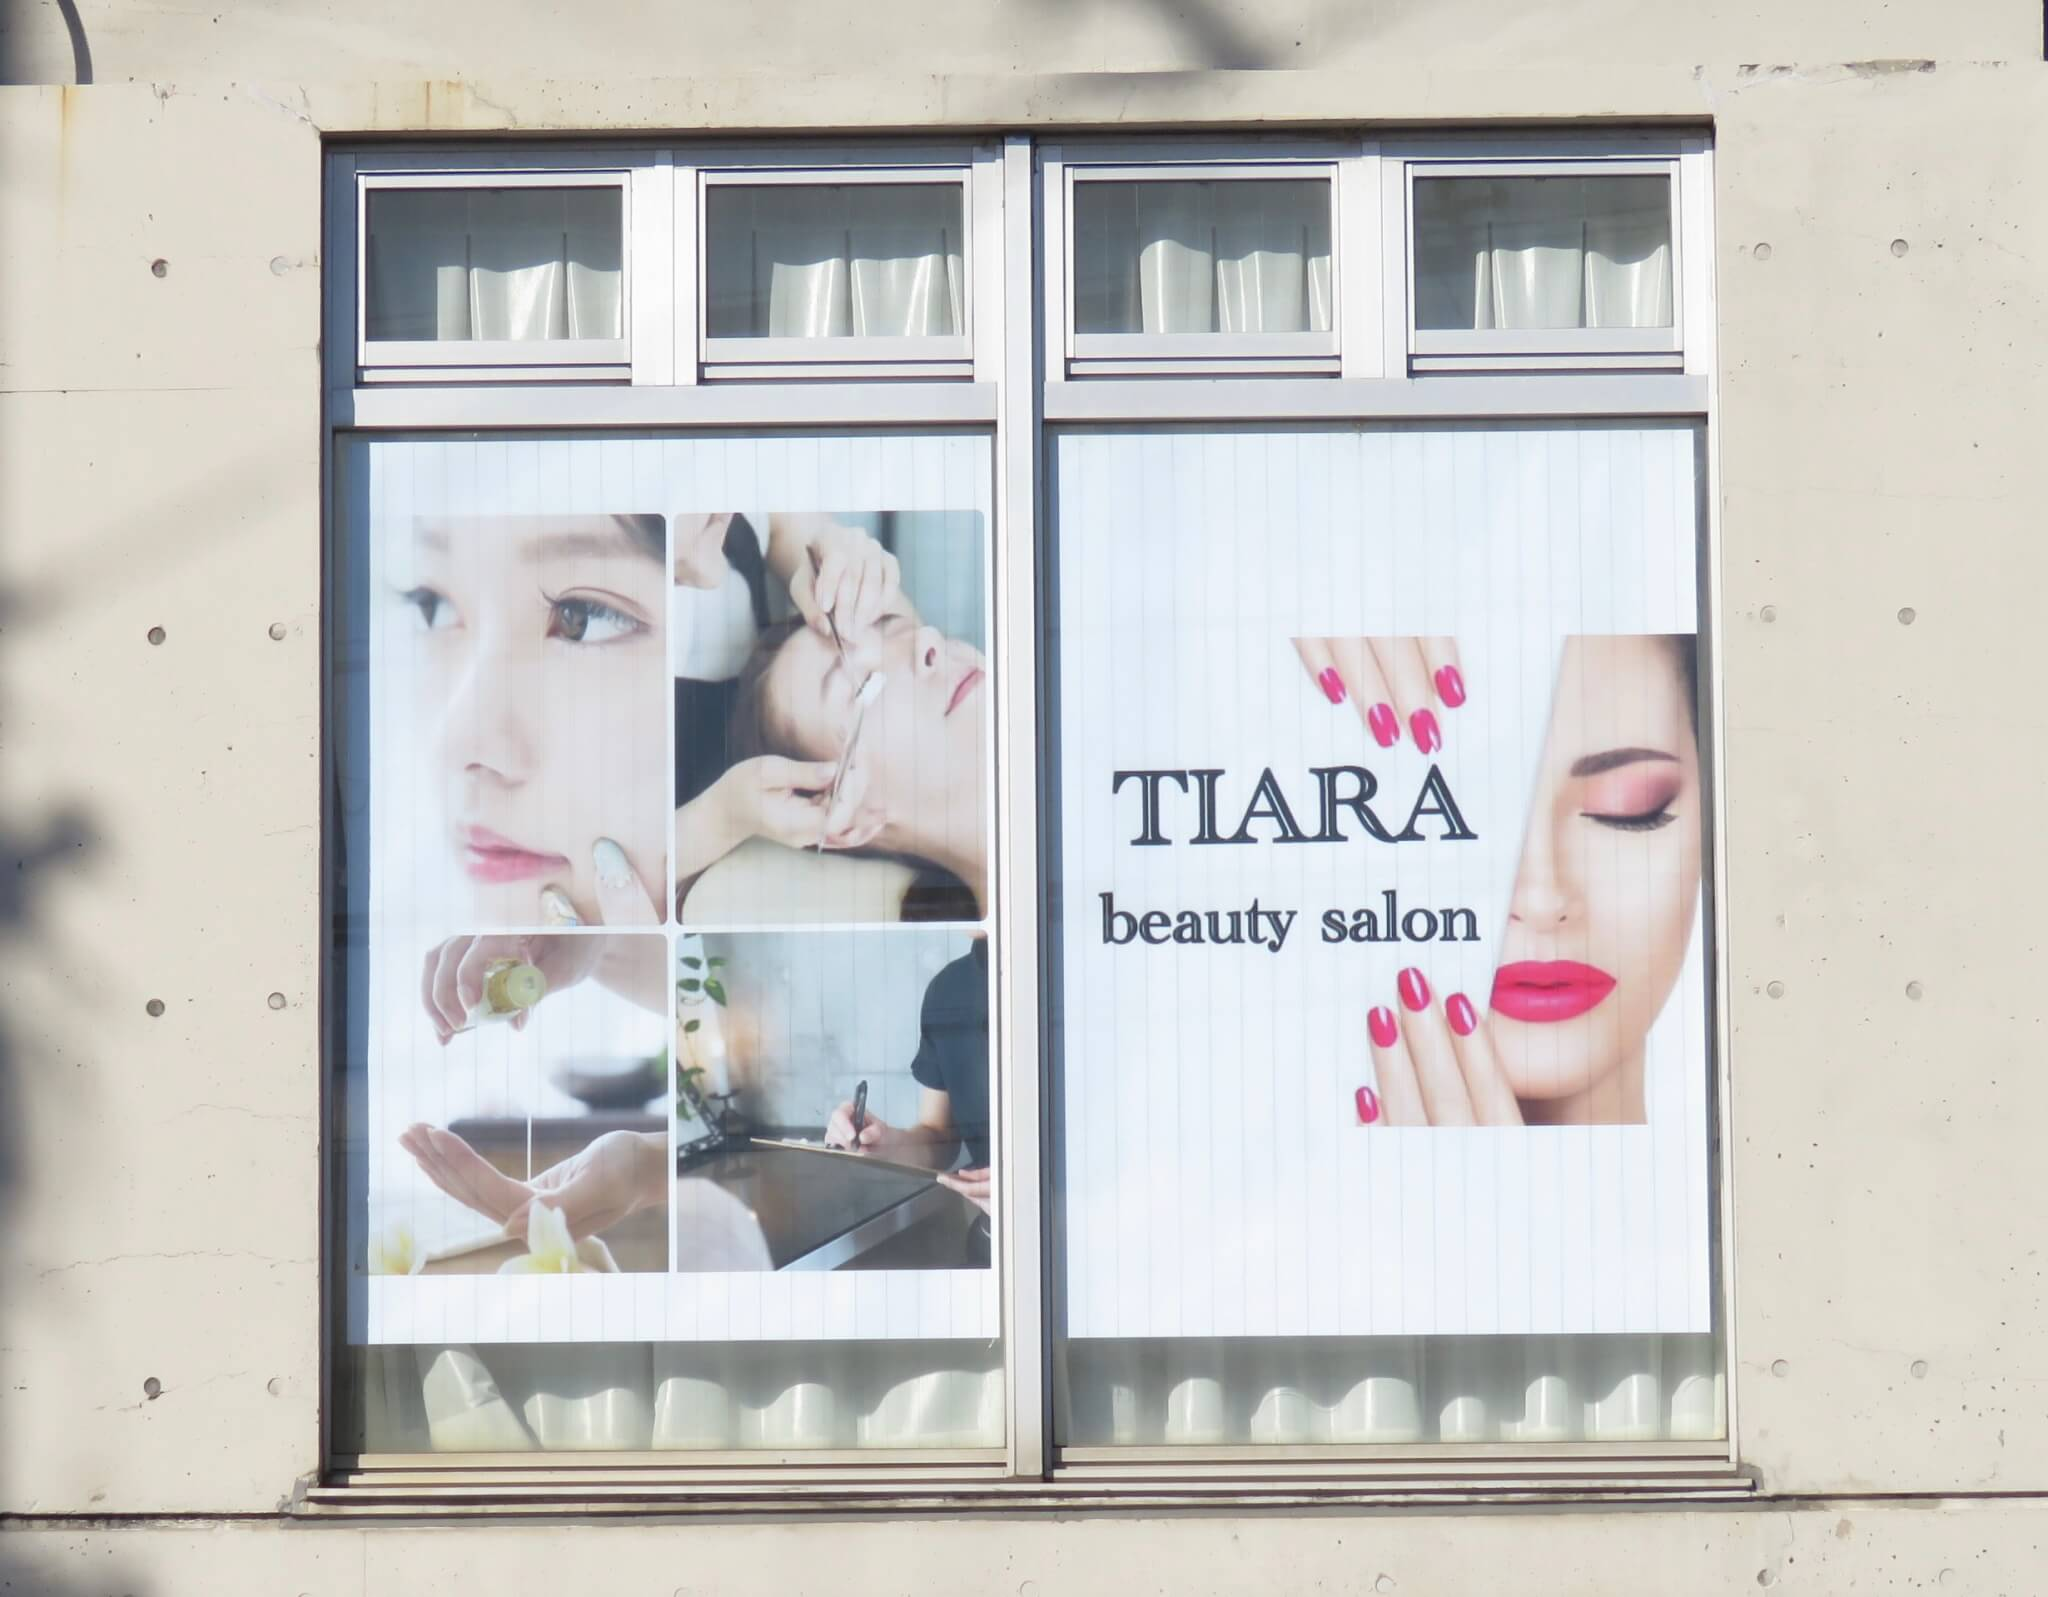 TIARA beauty salon窓のポスター